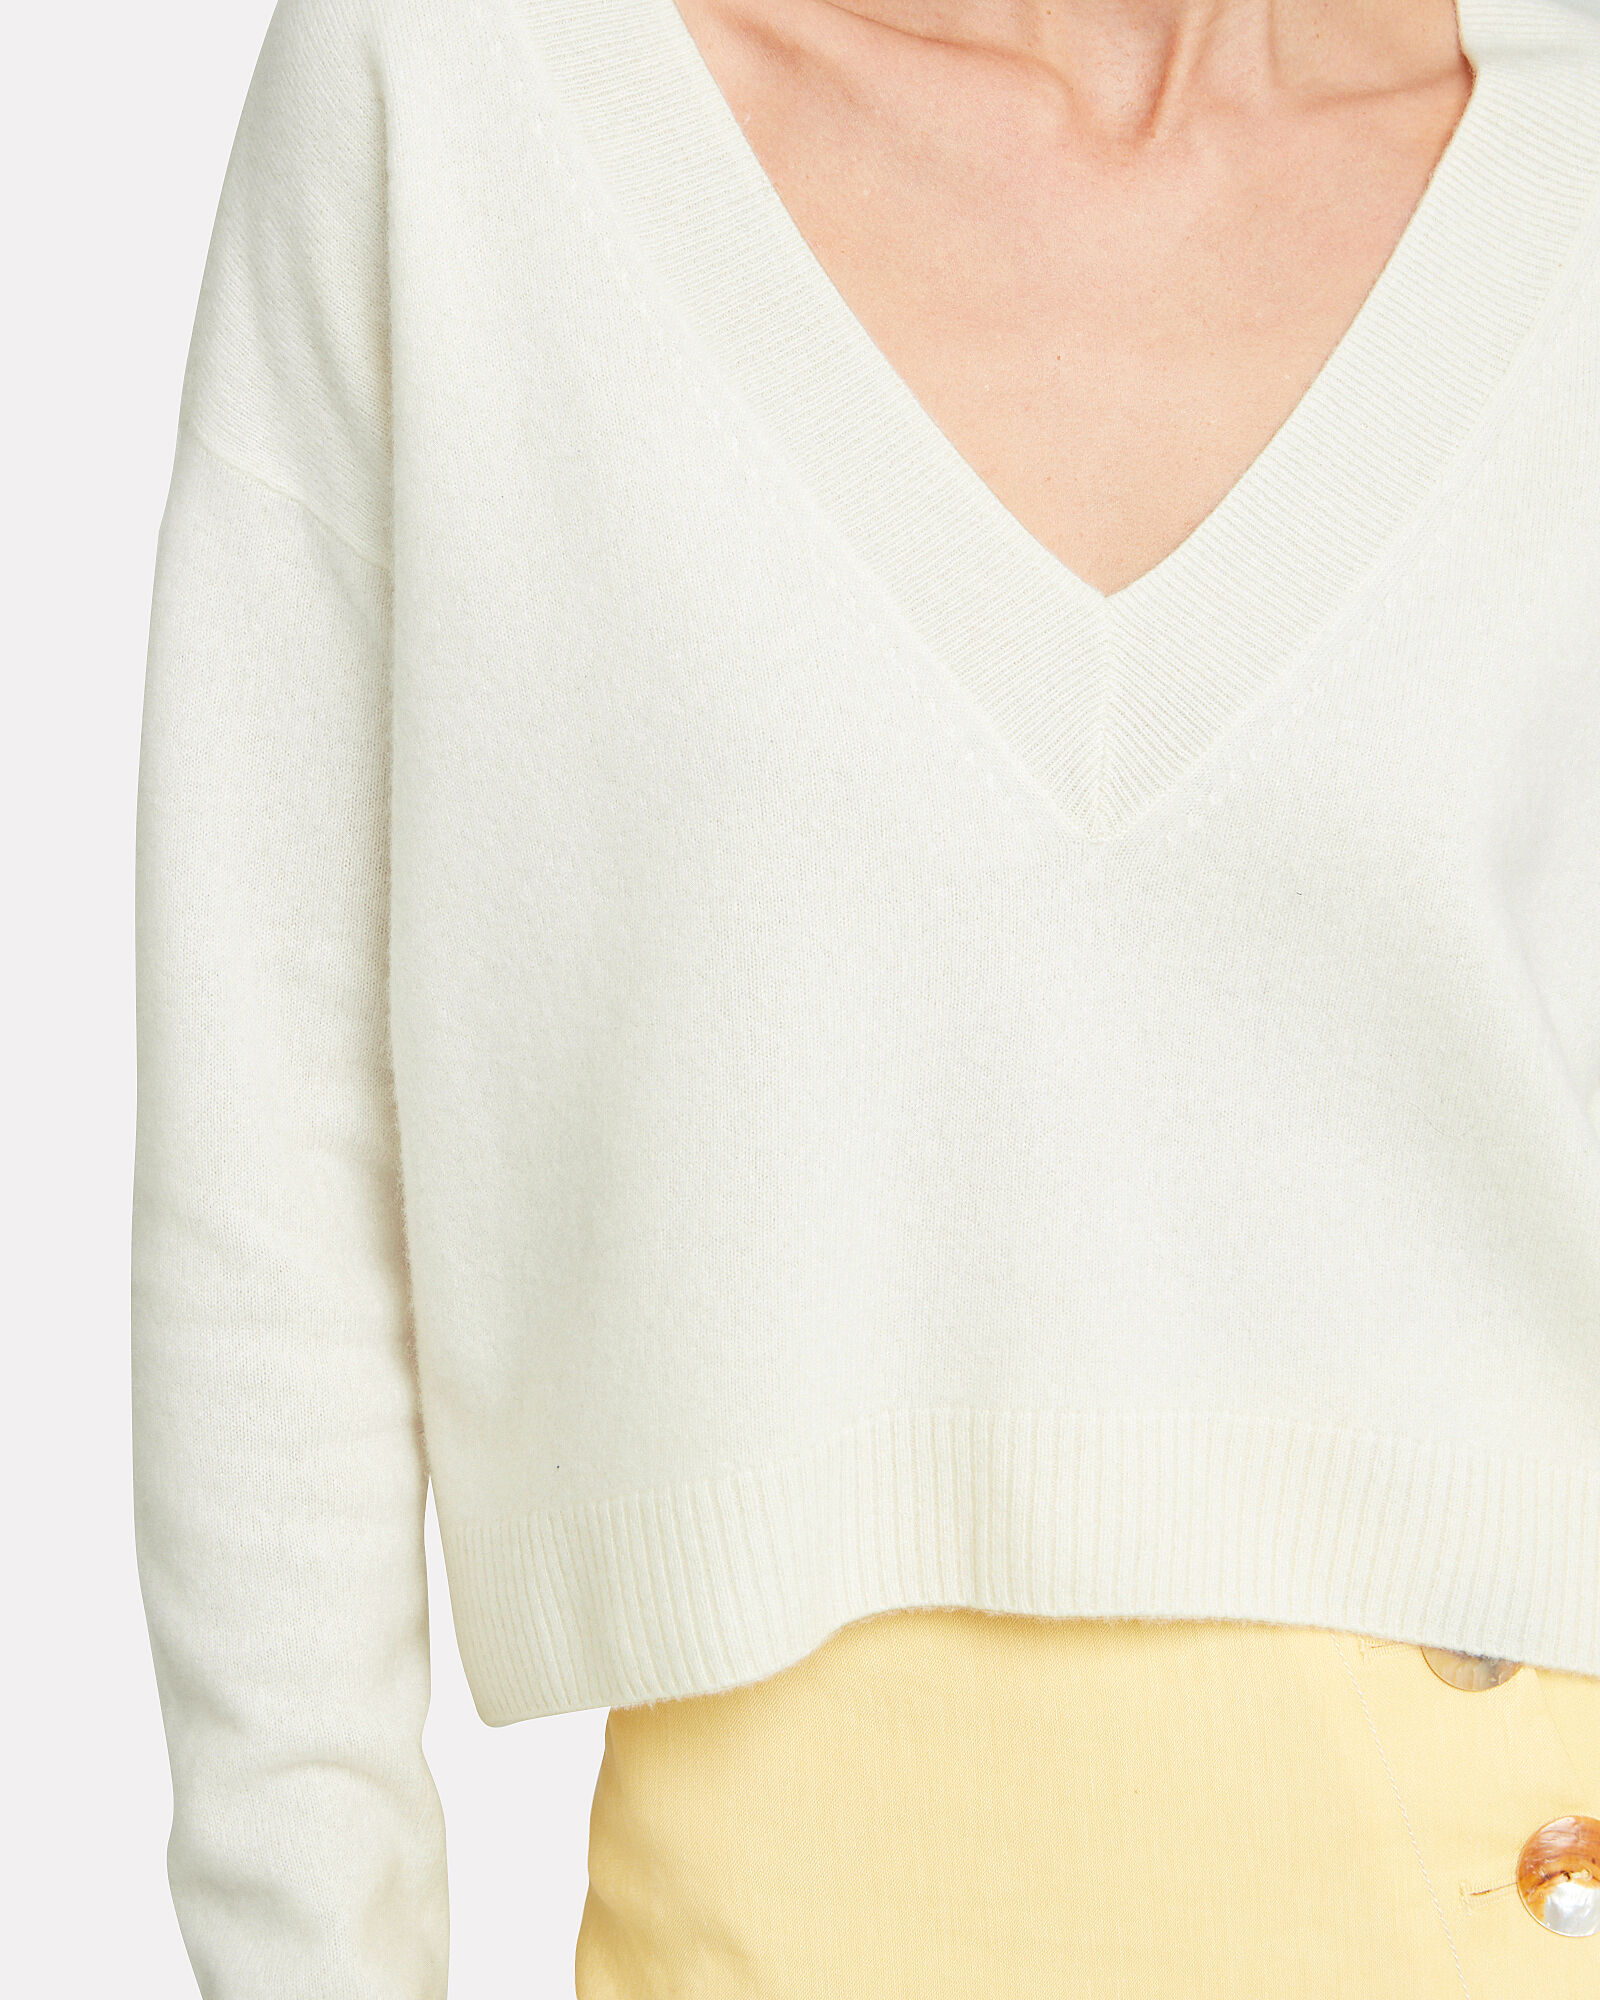 Elroy Cashmere Sweater, IVORY, hi-res